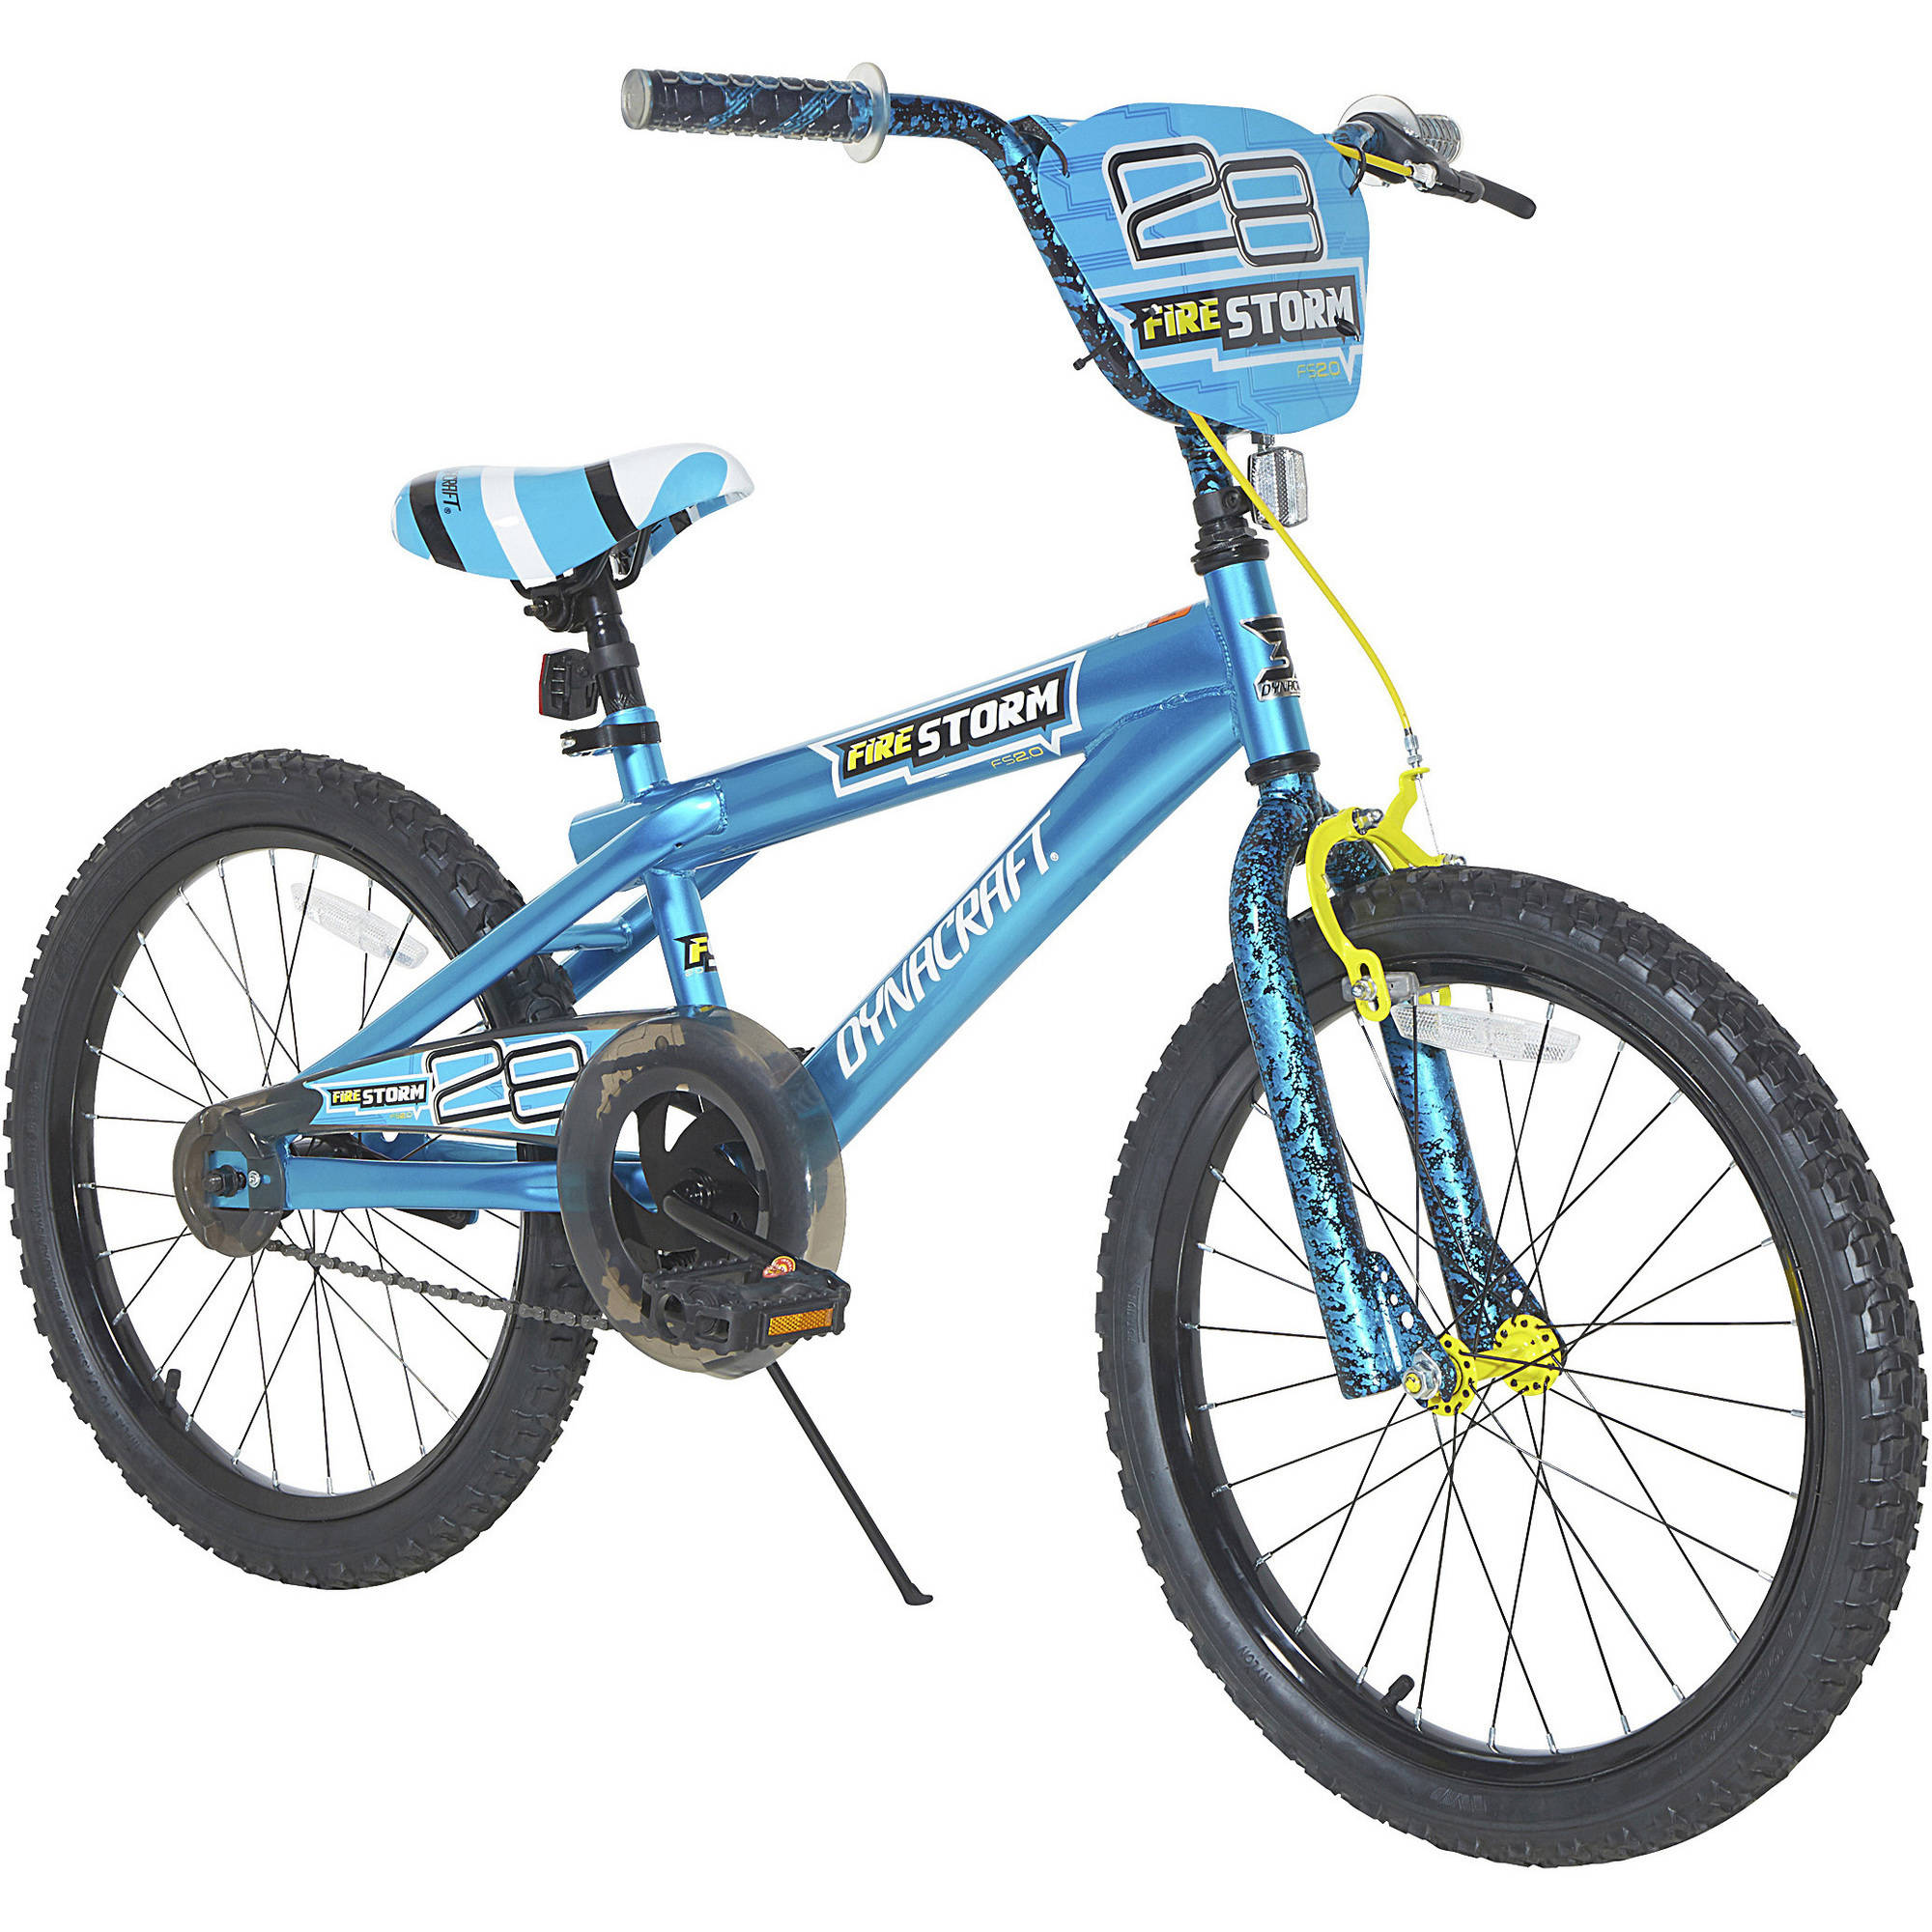 "Dynacraft 20"" Boys' Firestorm Bike"